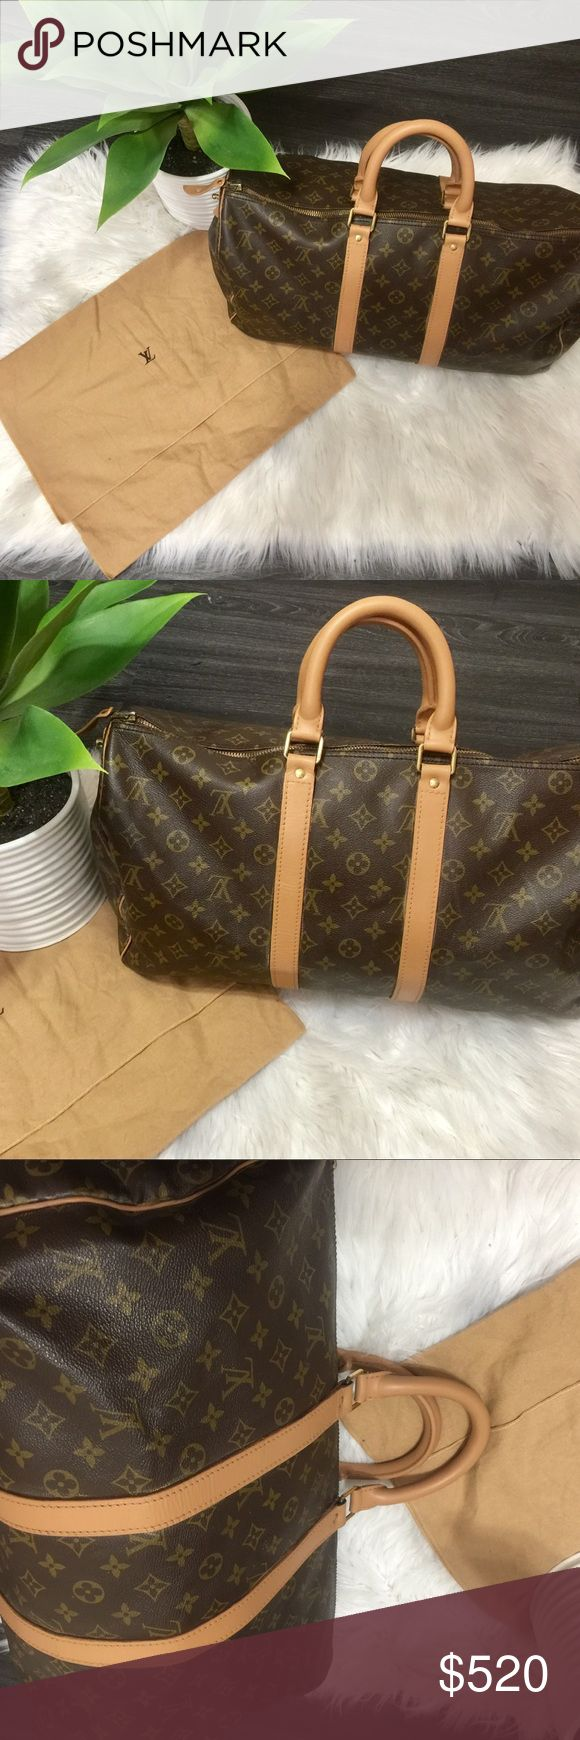 Louis Vuitton keepall 45 monogram bag Authentic Louis Vuitton keepall 45 canvas Monogram. In excellent condition. Comes with Louis Vuitton dustbag Custom Dyed and sealed for weather protection a beautiful vachetta to bring out its natural color. Corners on canvas are slightly scraped please see picture. Noticeable unless you look closely.  Vuitton Style	Hand Bag Material	Canvas leather Color	Monogram canvas Size	18.1 inch Country of Manufacture	France Size (inch) (Appro.)	W18.1 x H10.2 x…